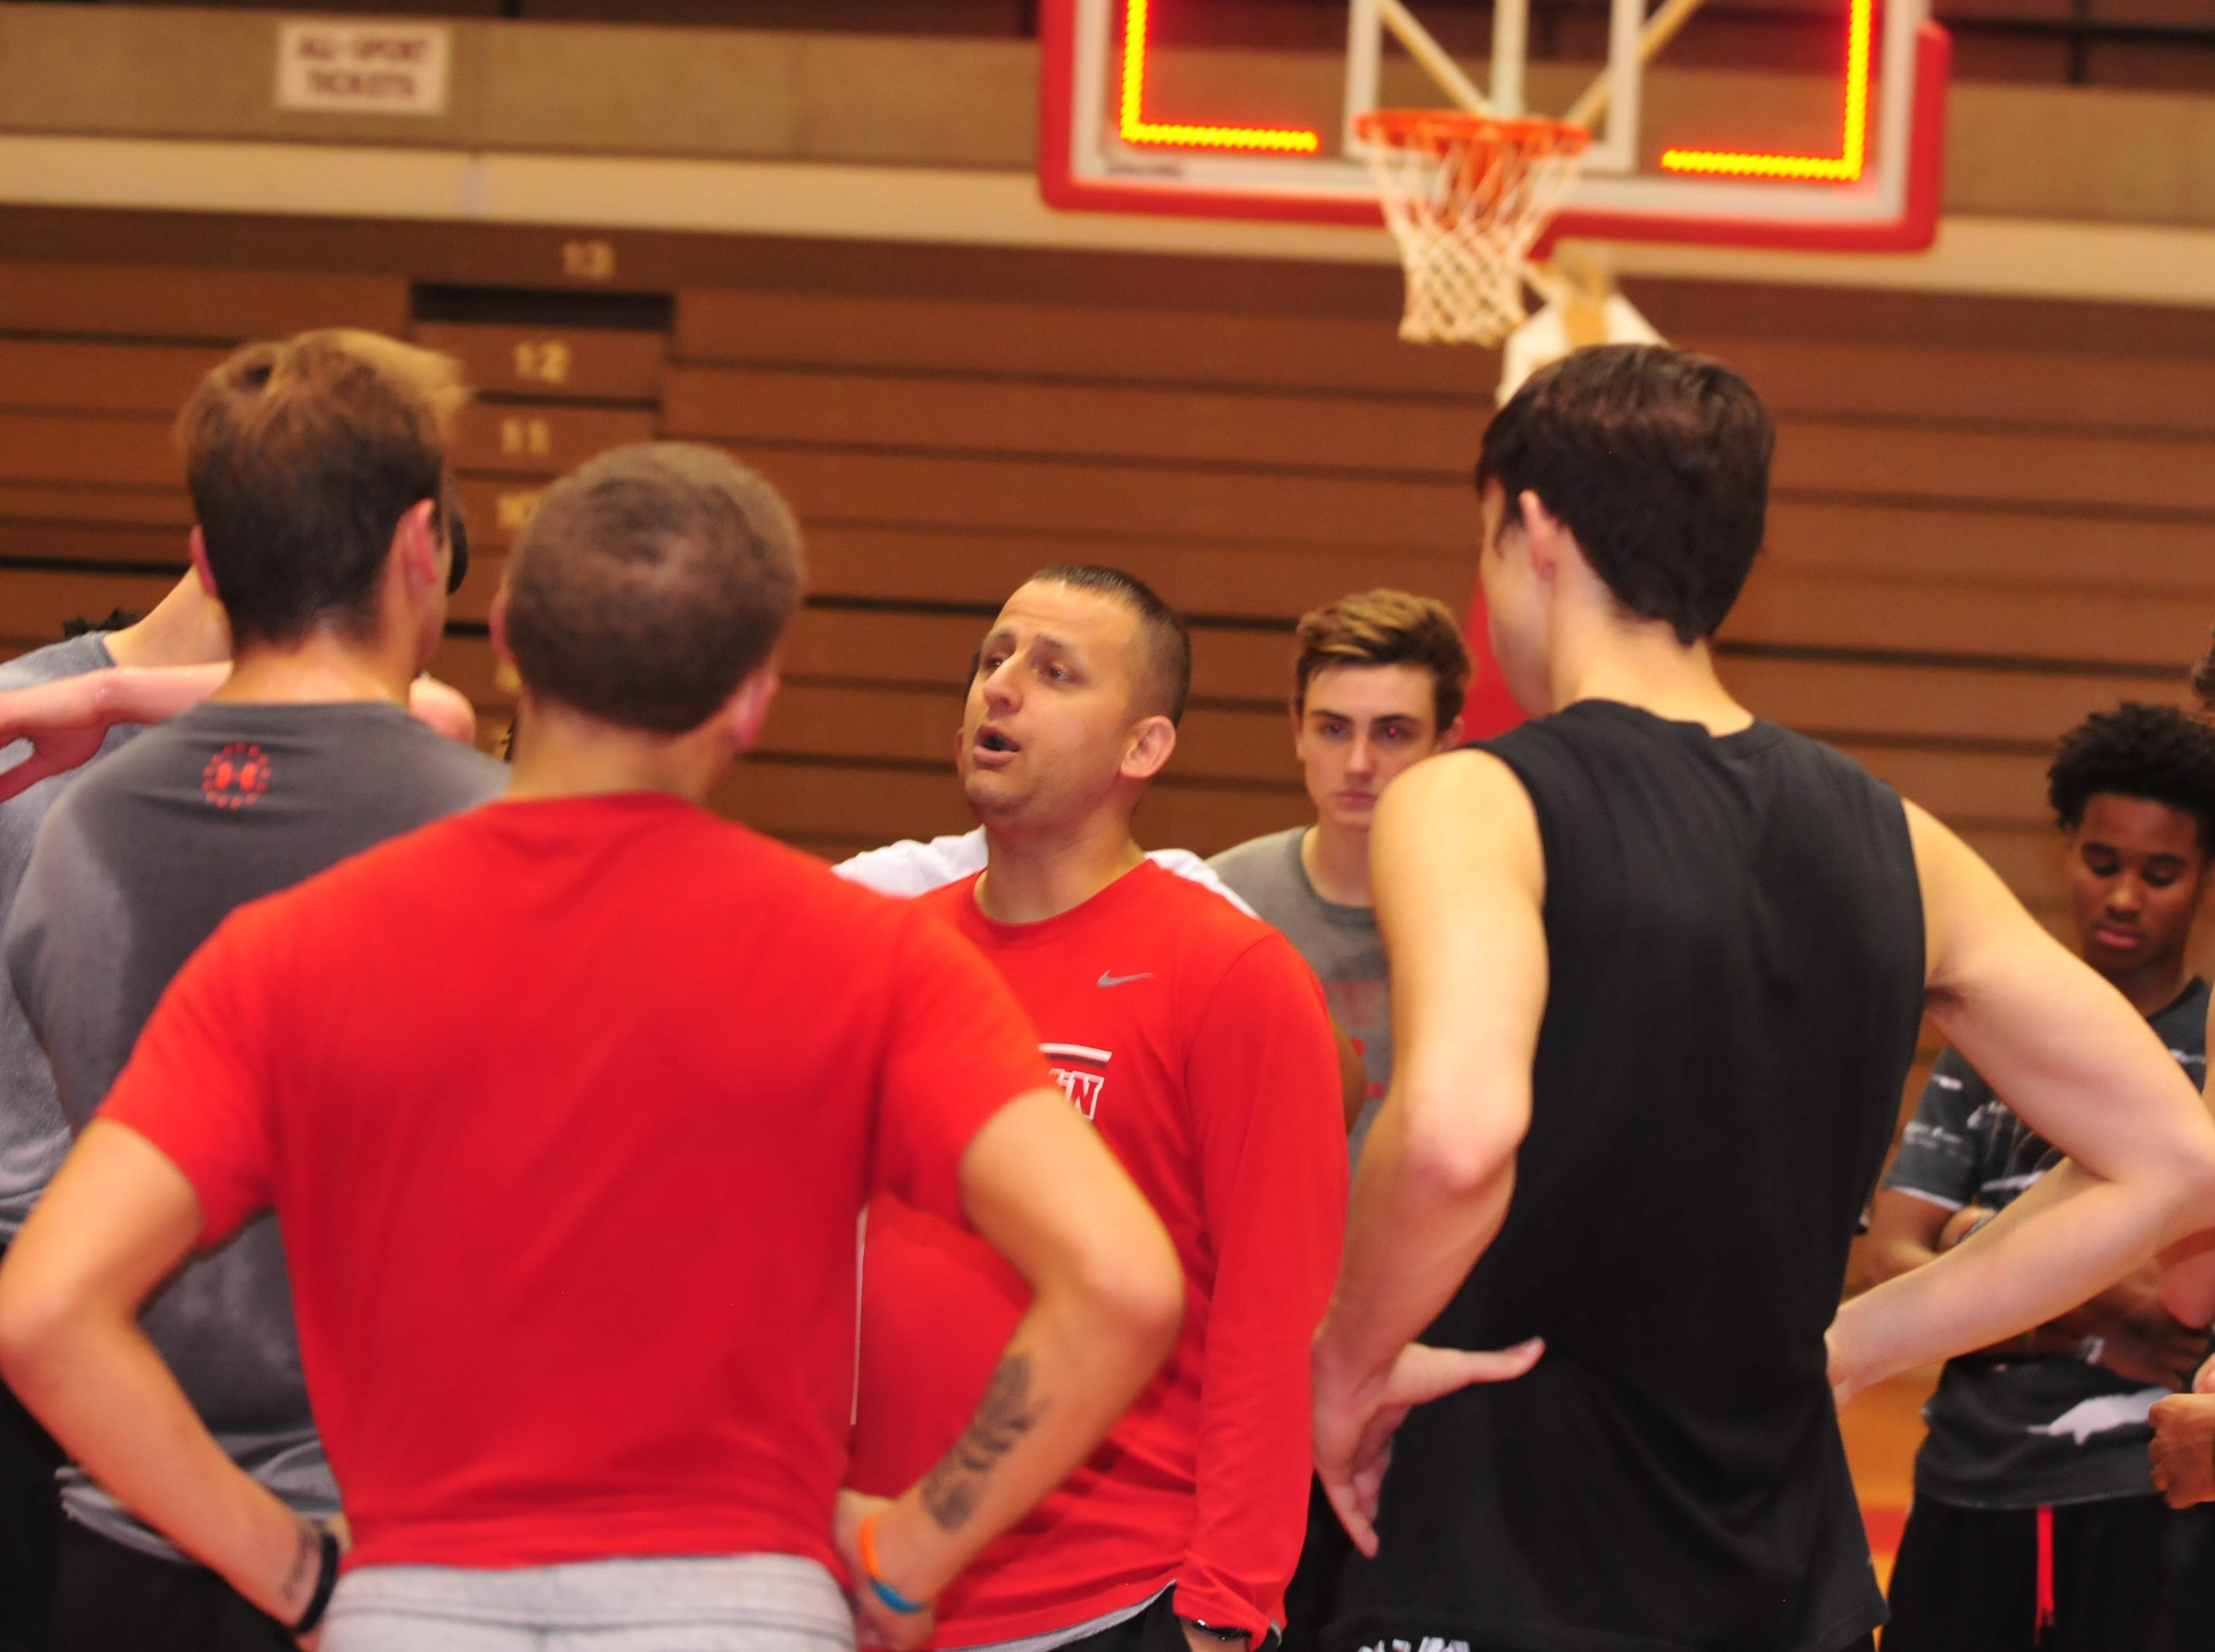 Richmond High School boys basketball coach Shabaz Khaliq talks to players during boys basketball practice Monday, Nov. 5, 2018 at the Richmond High School's Tiernan Center.